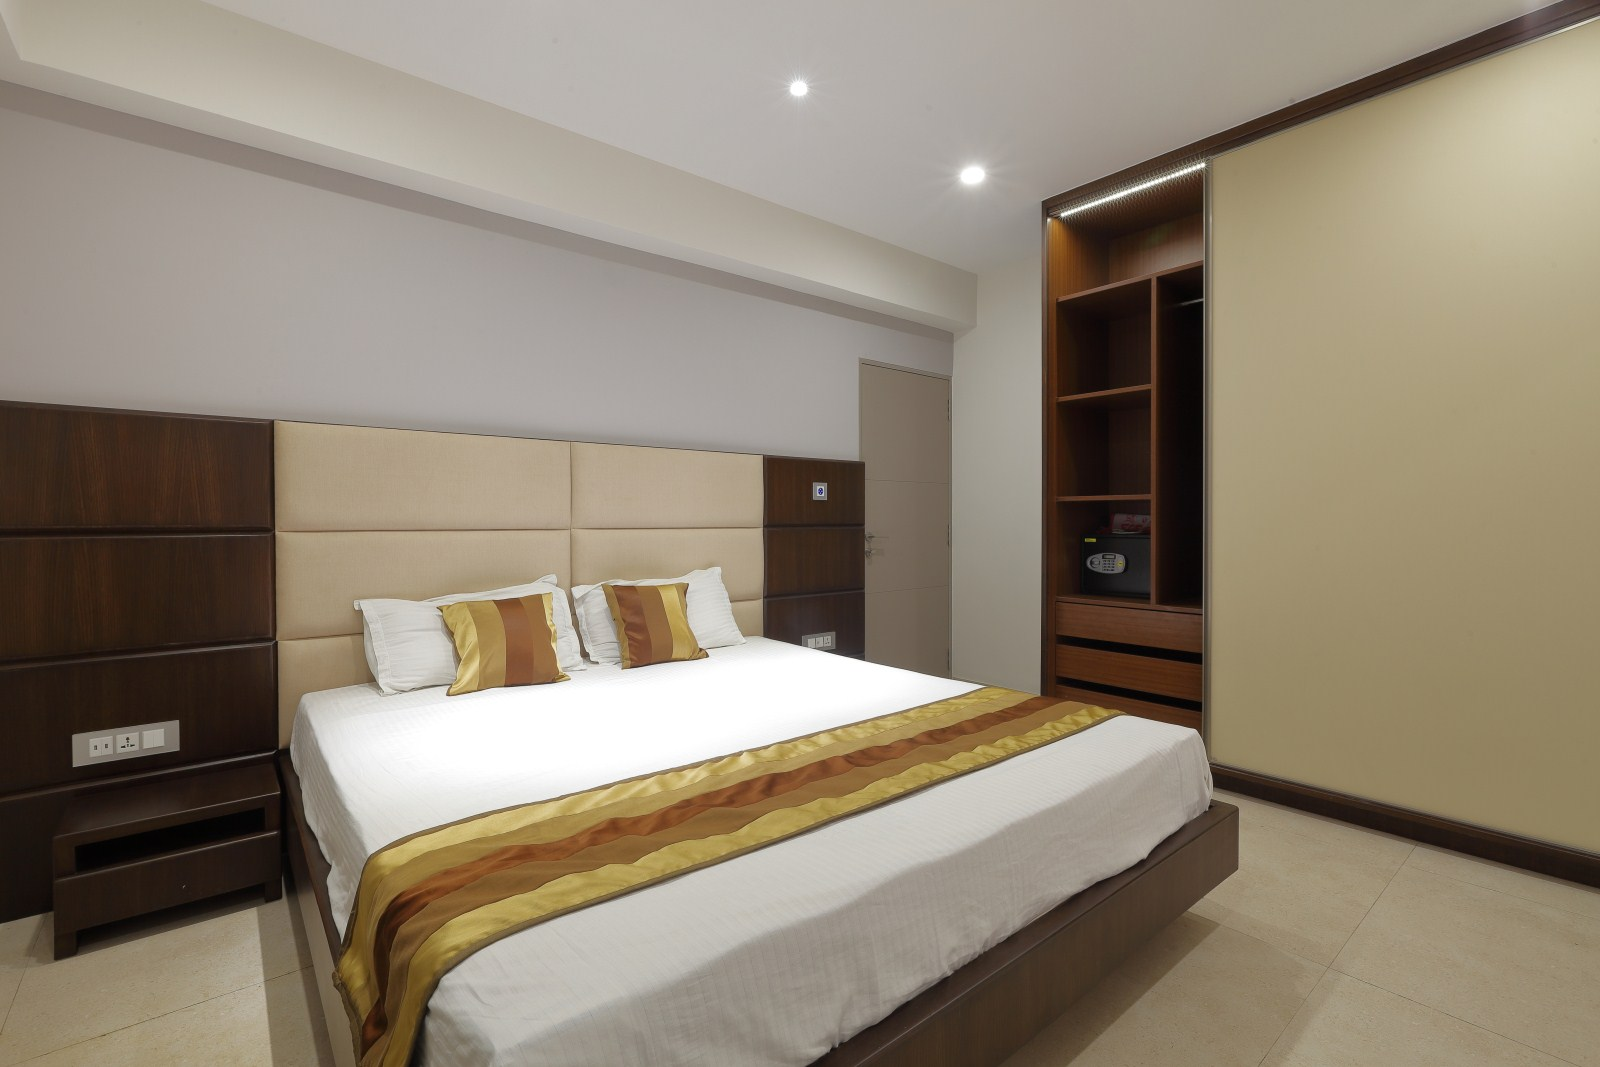 . Interior Design Cost For Bedroom   Best Architects   Interior